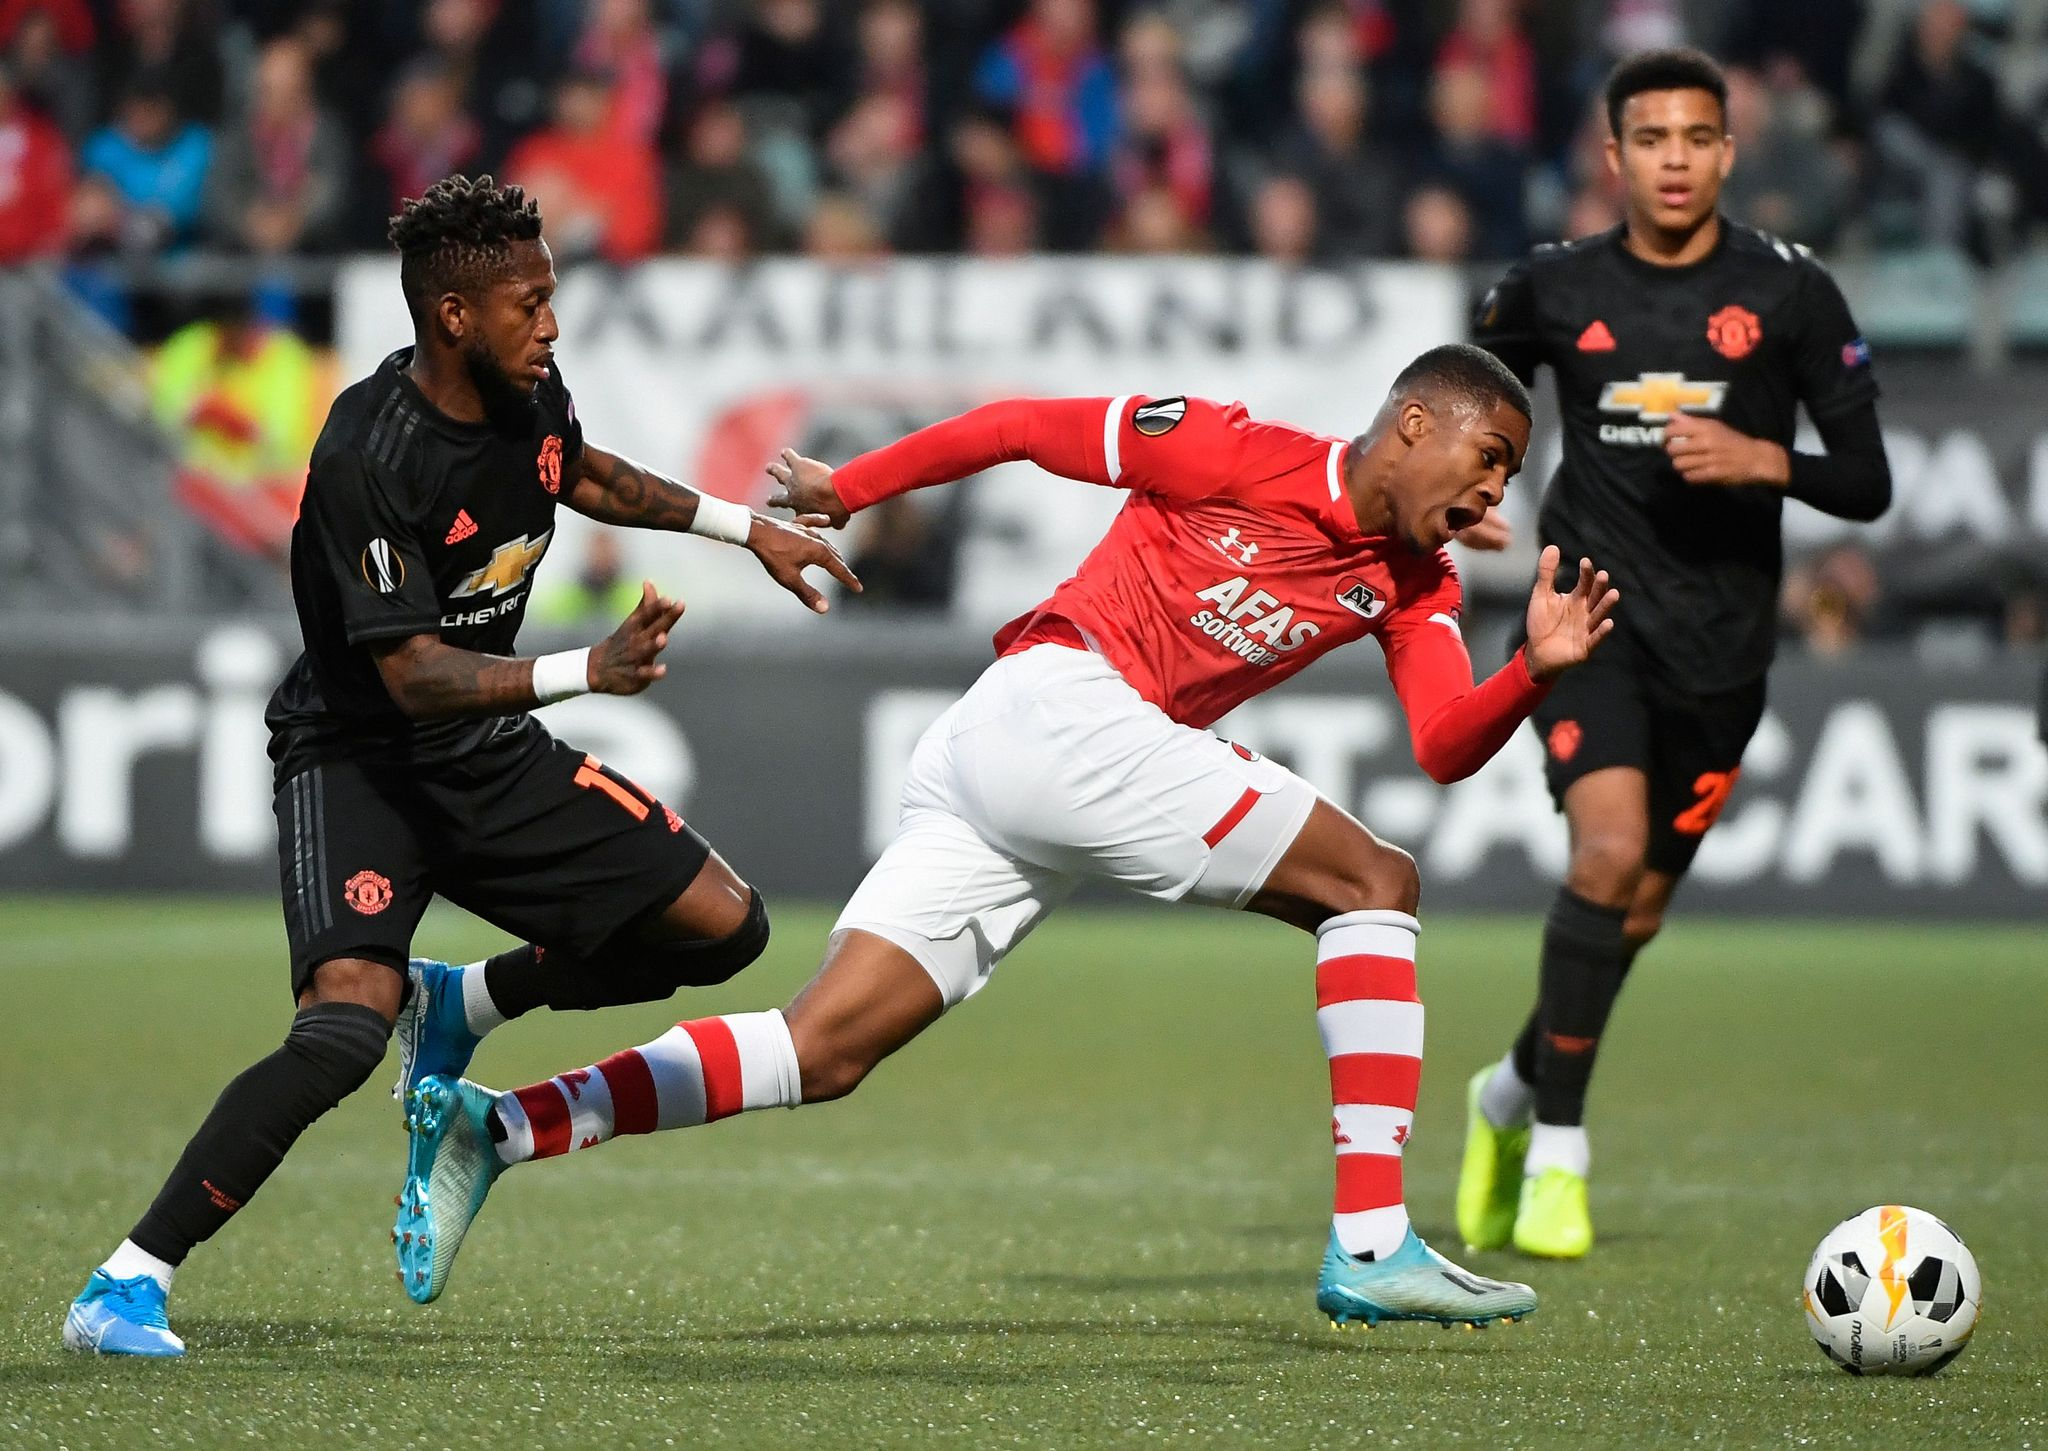 Manchester <HIT>United</HIT>s Brazilian midfielder Fred (L) fights for the ball with AZ Alkmaars Dutch forward Myron Boadu during the UEFA Europa League Group L football match berween AZ Alkmaar and Manchester <HIT>United</HIT> at the ADO Stadium in The Hague, on October 3, 2019. (Photo by JOHN THYS / AFP)